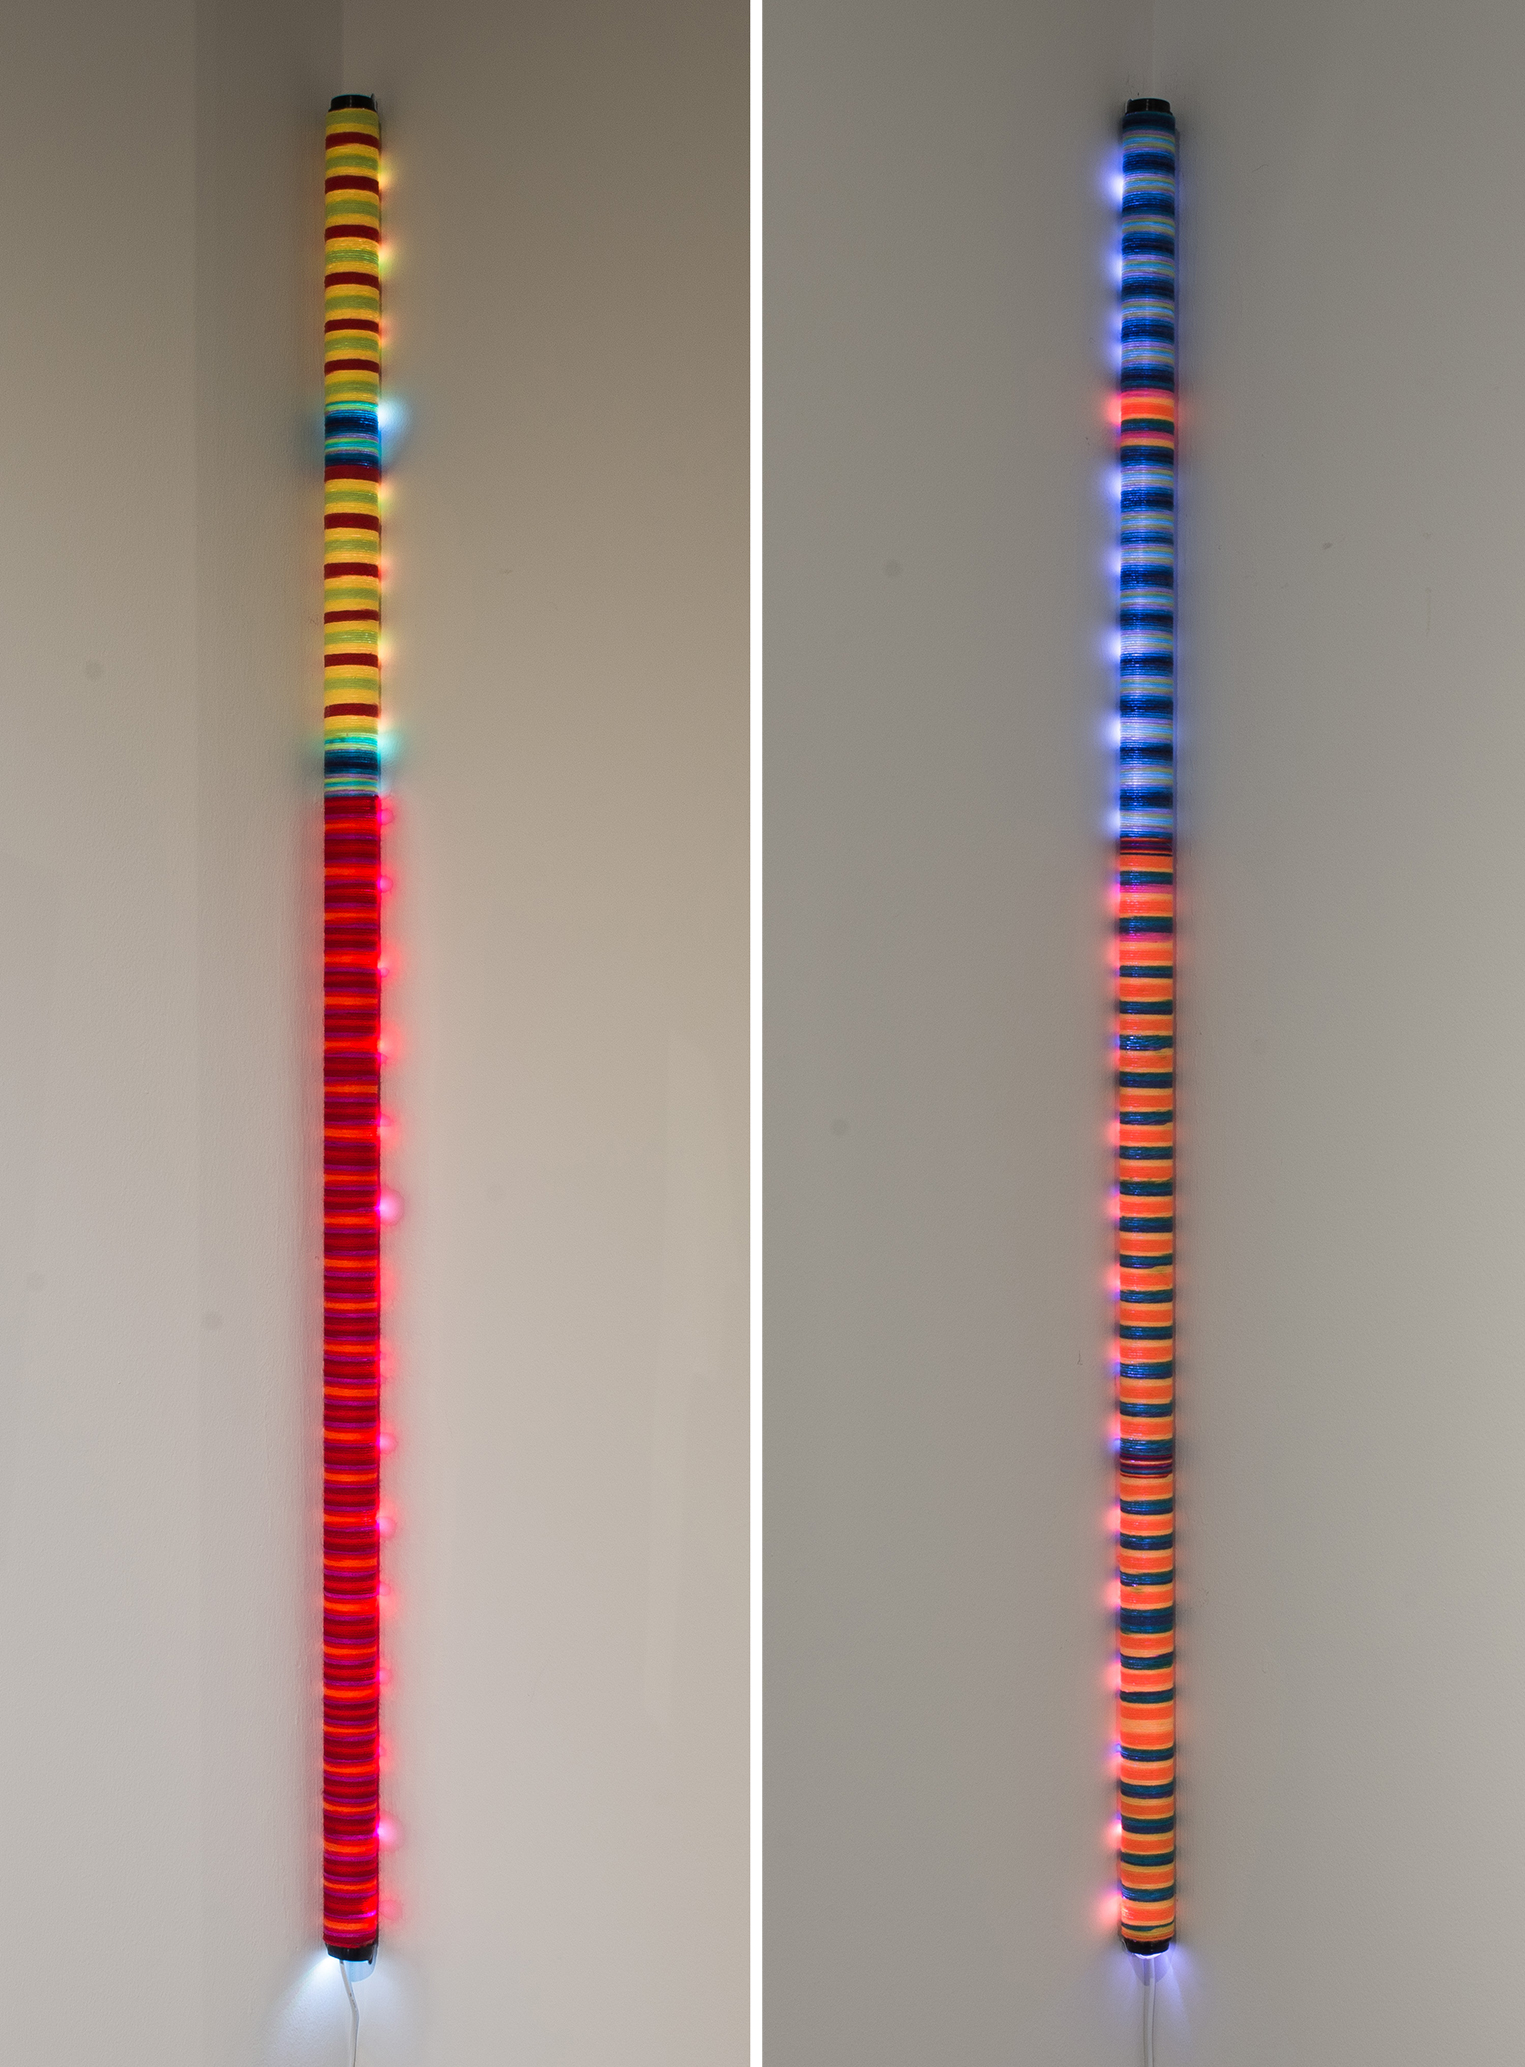 Hallie Beams: Petite Baton (4ft) - Mixed Media2014Other colors are available!**Available for purchaseExhibited at:Gallery 701 at the Long Center, January – October, 2016 (Austin, Texas)Art for the People, May – June, 2015 (Austin, Texas)In a relationship, we have many beams of light which are the positive aspects of the relationship.This helps the relationship stay fresh, and is why you keep coming back for more.** Example of Positive Glow Beams light options and cycles HERE